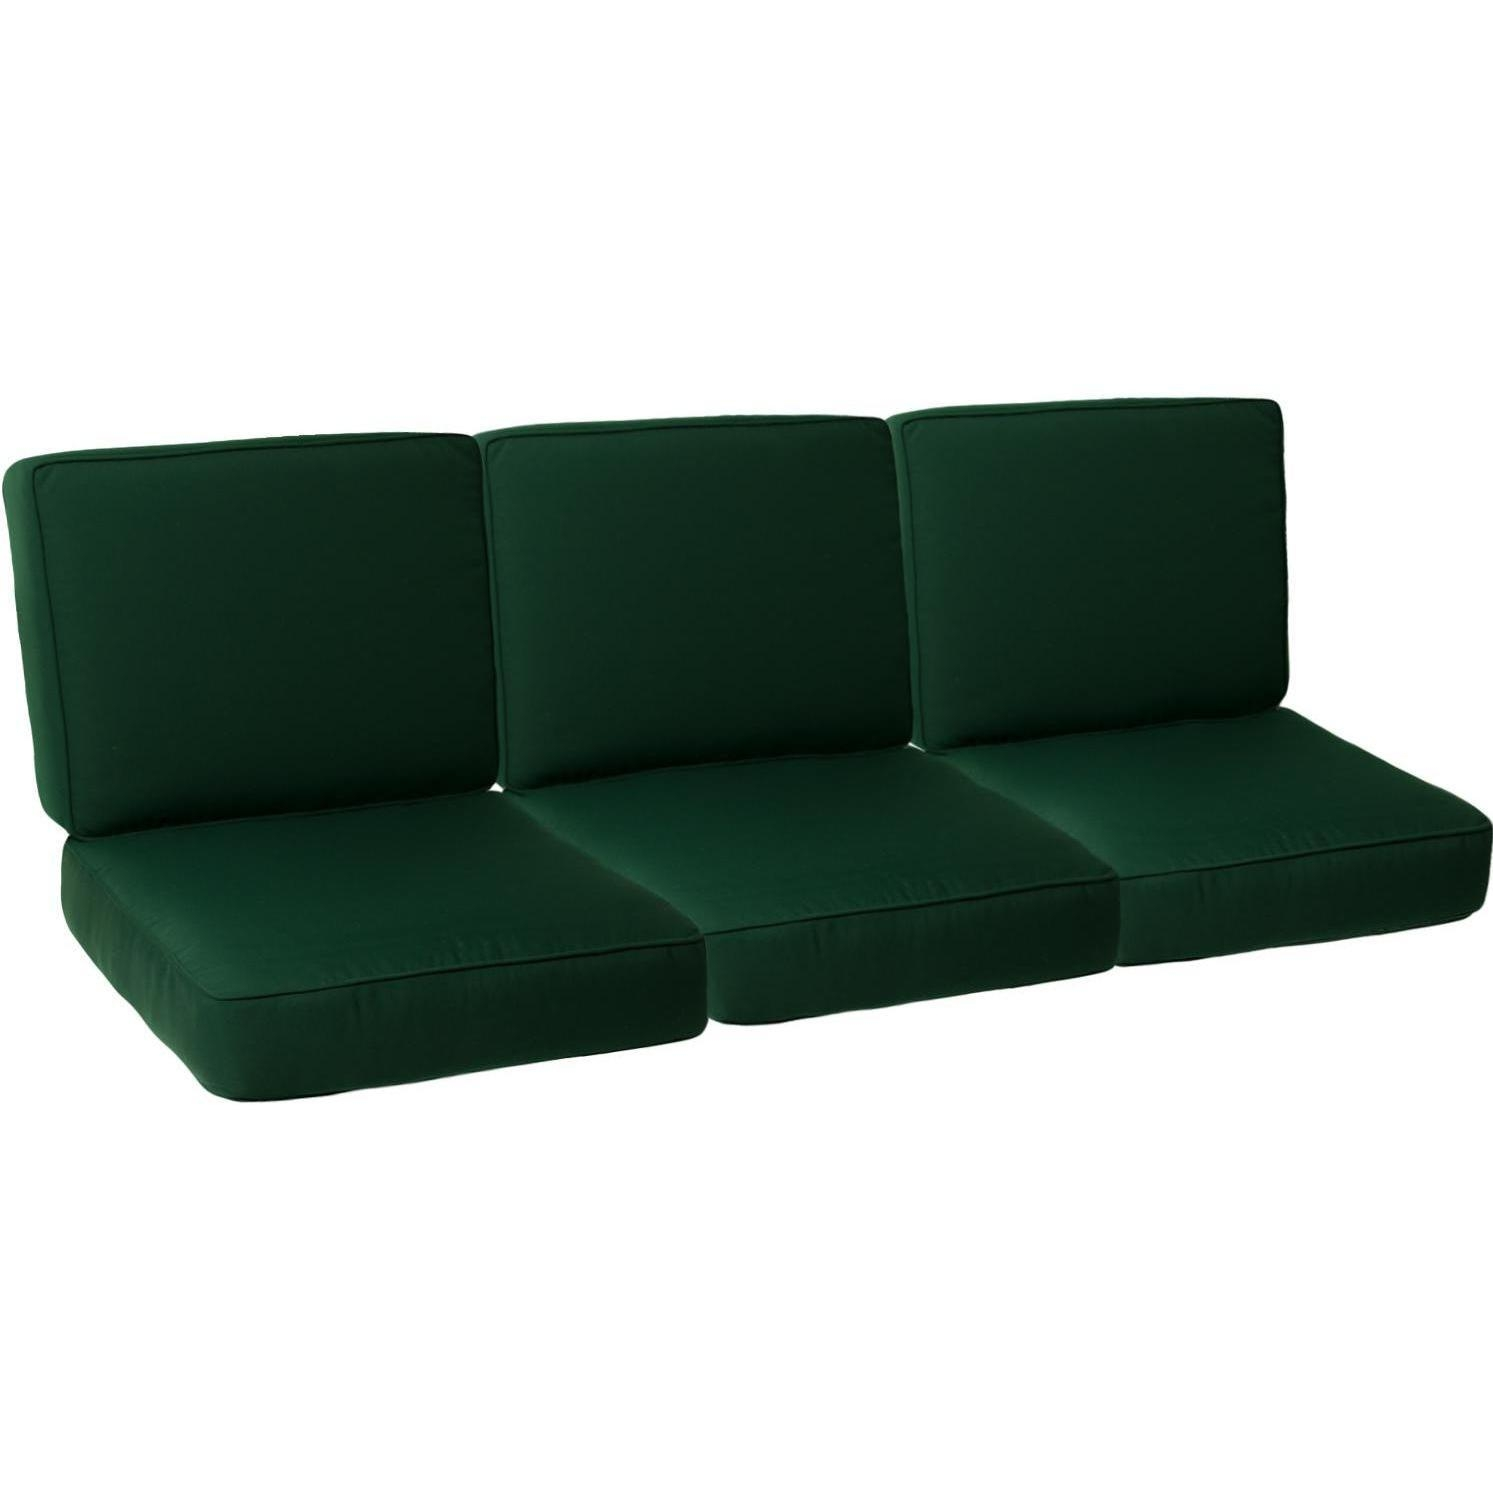 Decorating: Red Replacement Sofa Cushions For Lounge Chair With Regard To Sofa Accessories (View 12 of 20)